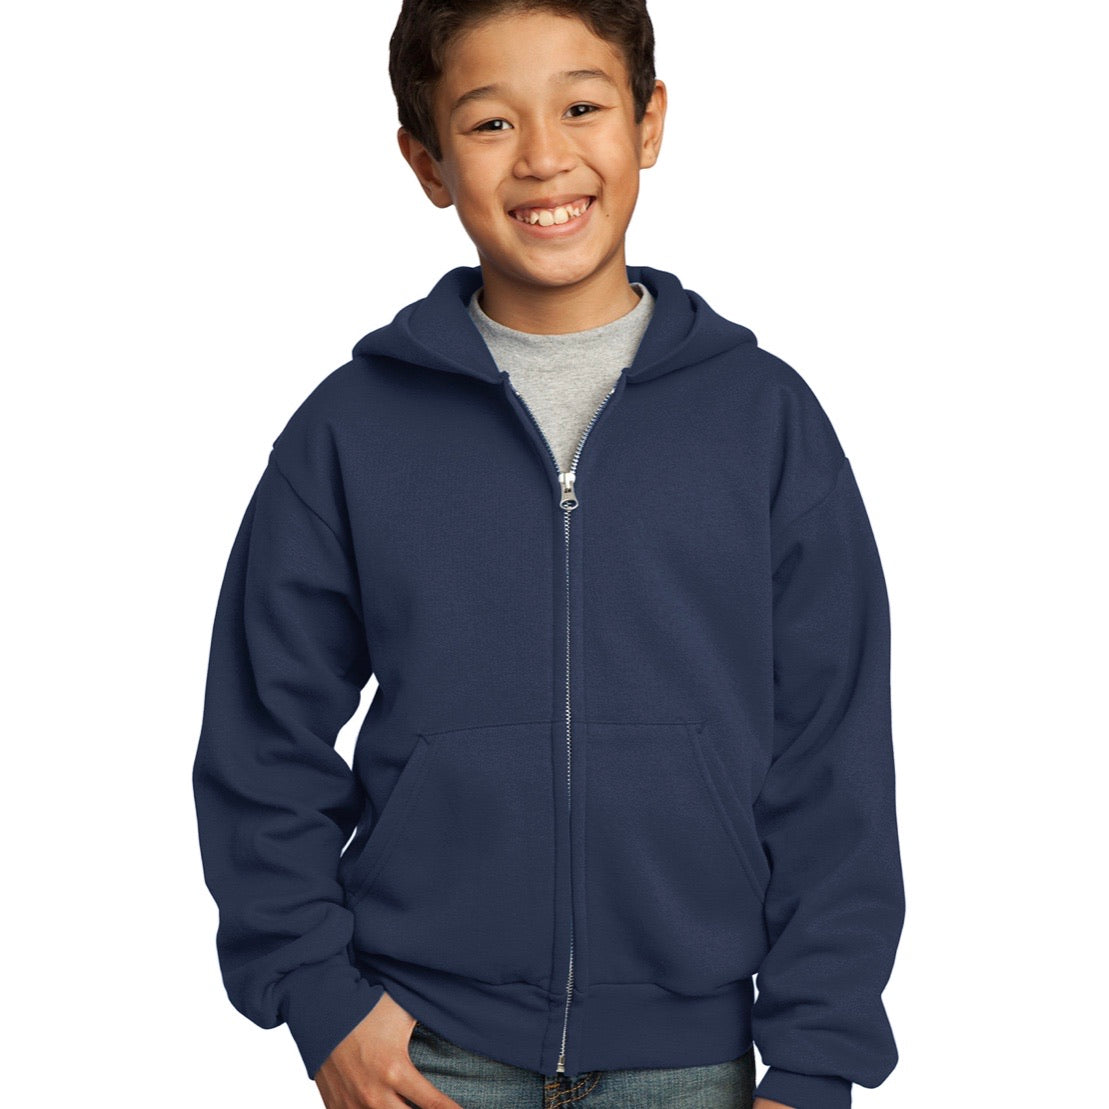 Fleece Full Zip Hoodie Embroidered Logo, Youth (Y2T-4XL)